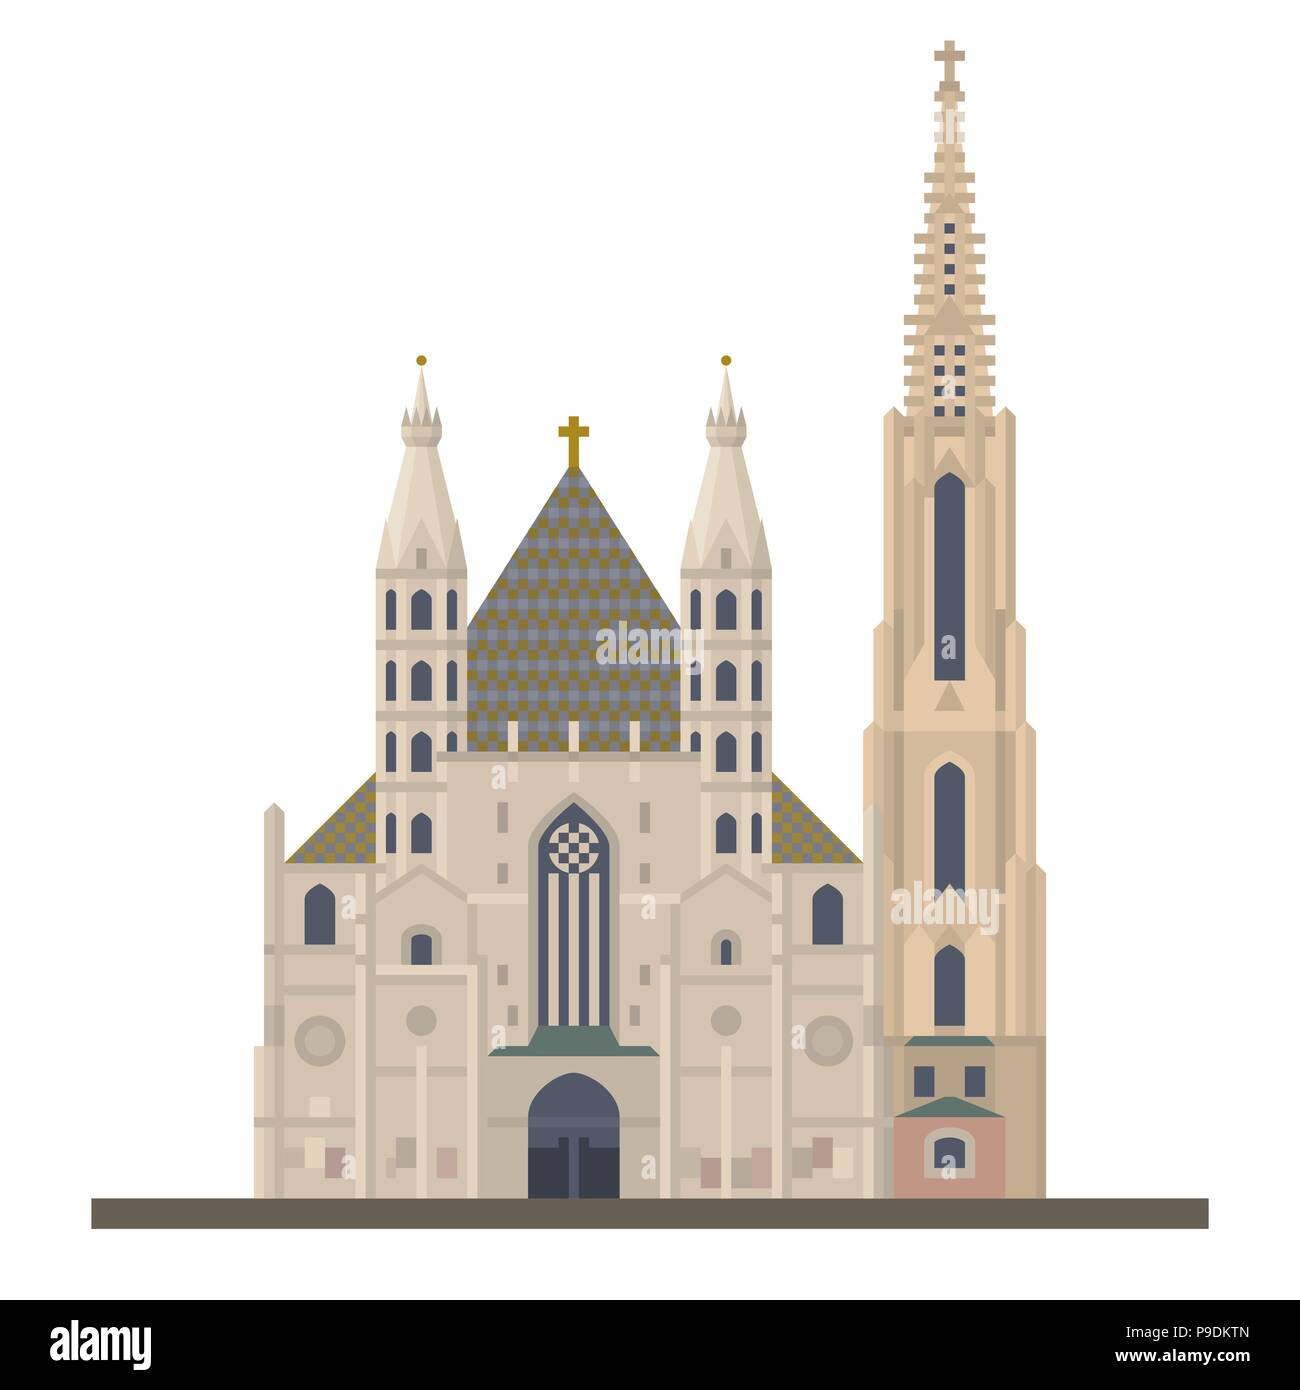 Flat design vector icon of Saint Stephens Cathedral or Stephansdom at Vienna, Austria - Stock Image